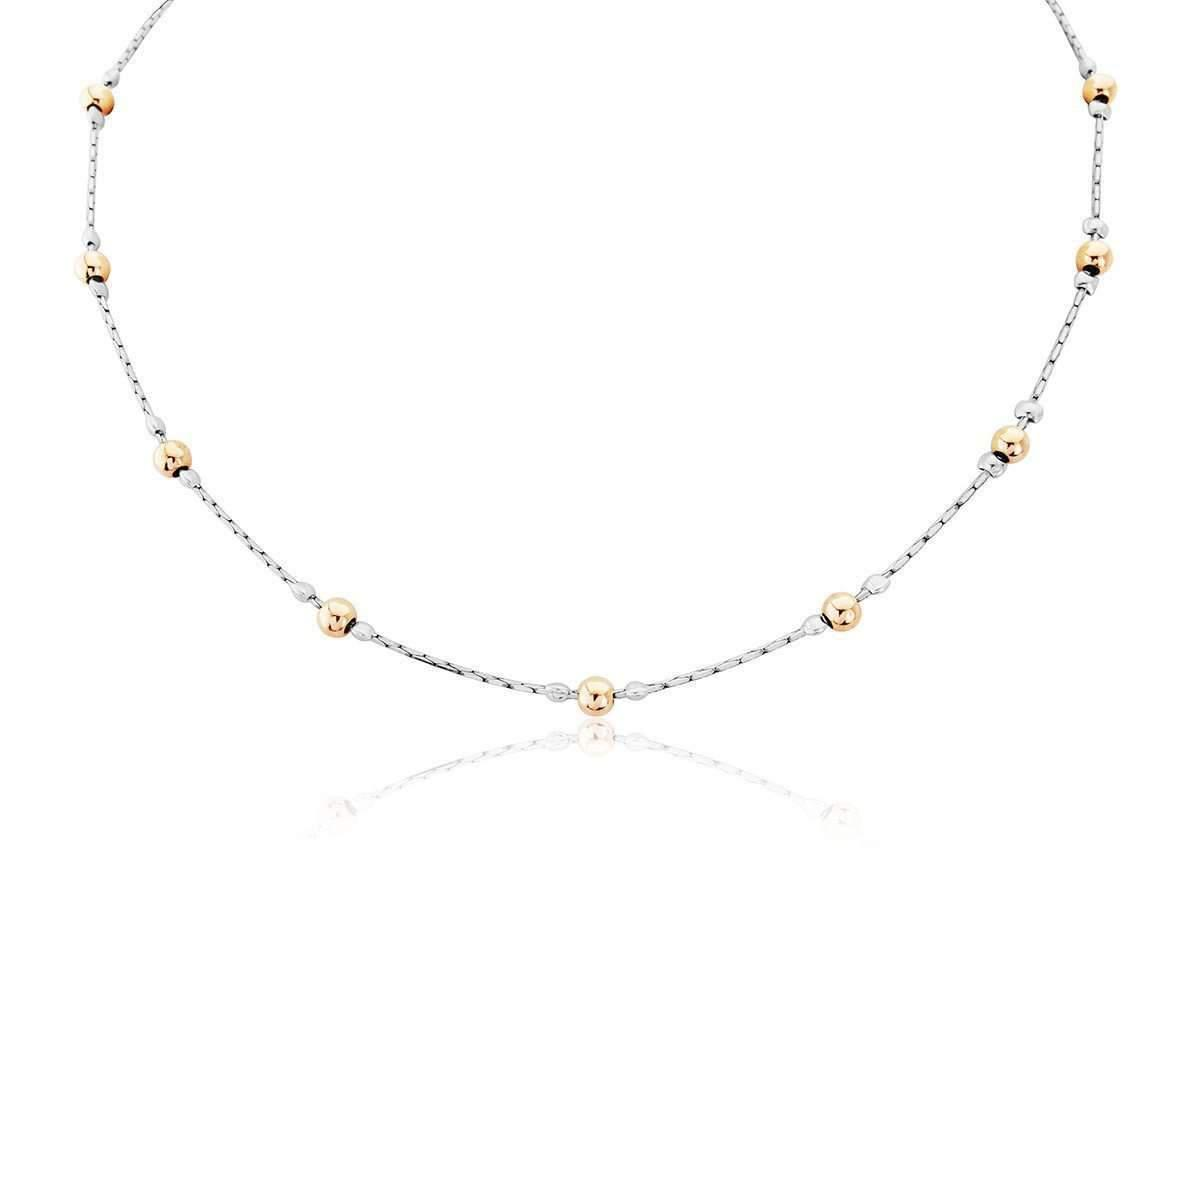 Lavan Sterling Silver & Gold Nugget Necklace - 16 Inches lSzzQSIw